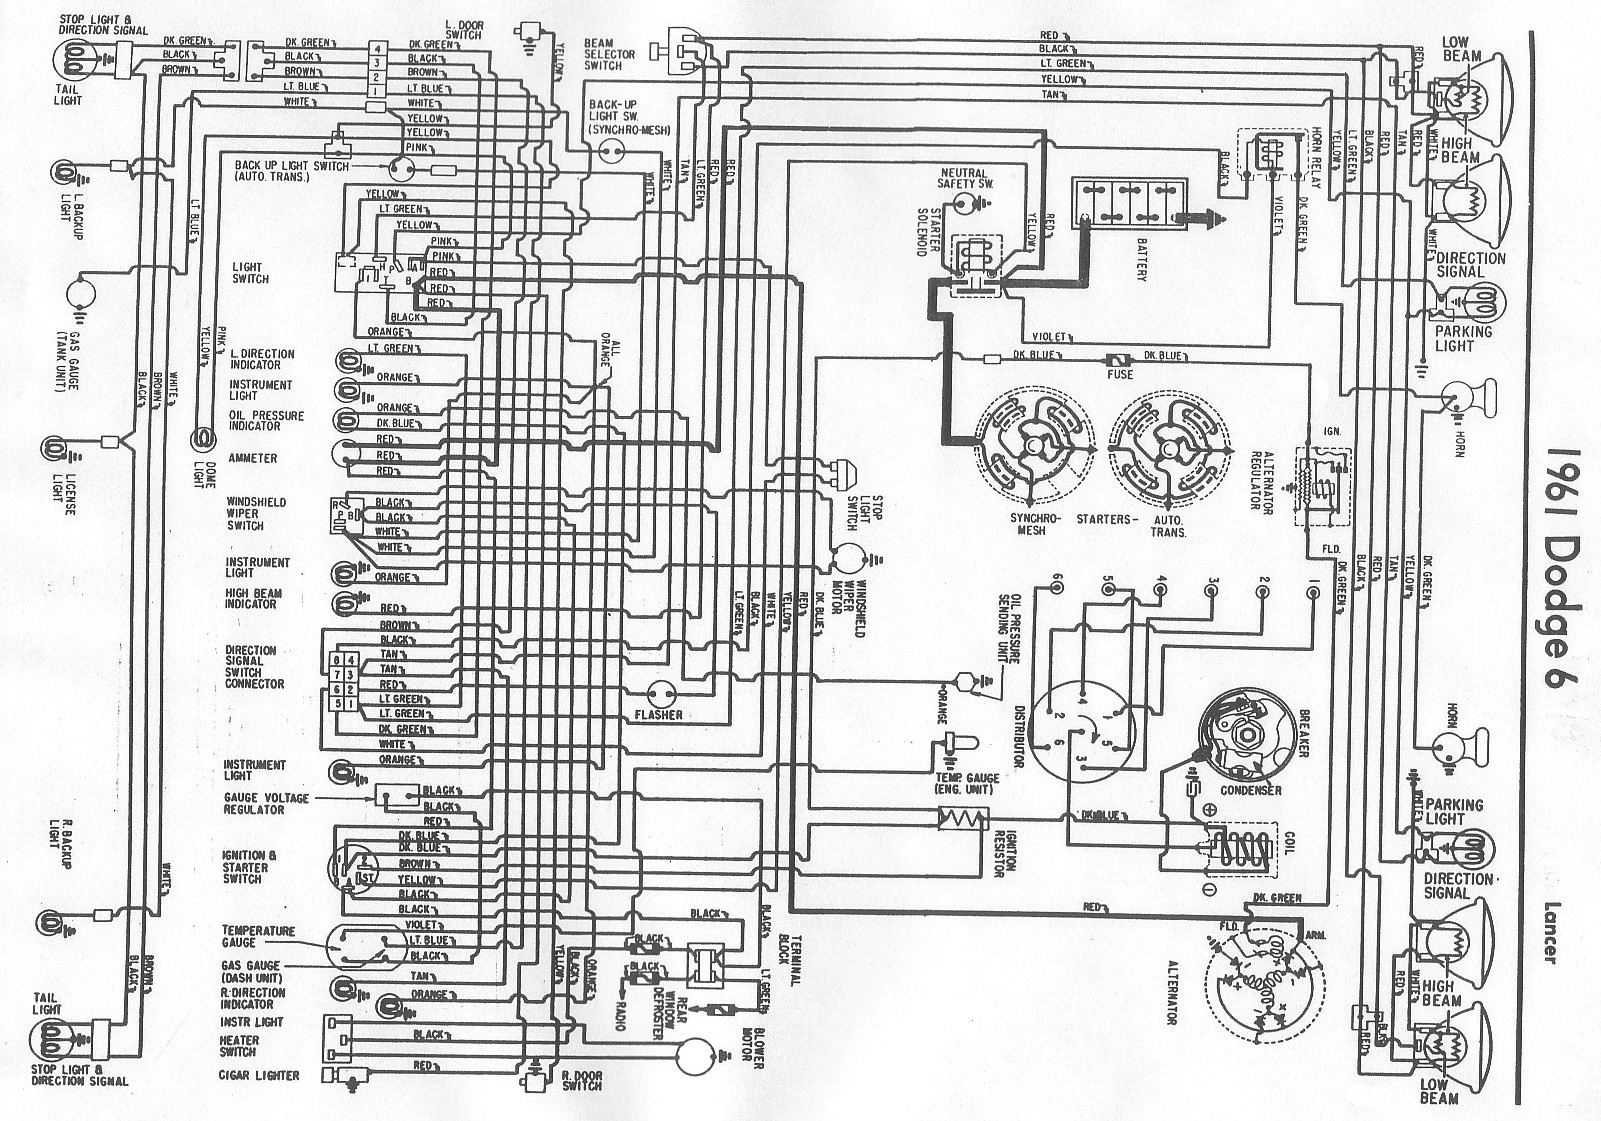 hight resolution of 1995 volvo 940 ac wiring diagram volvo 240 radio wiring volvo engine relay diagram d13 volvo